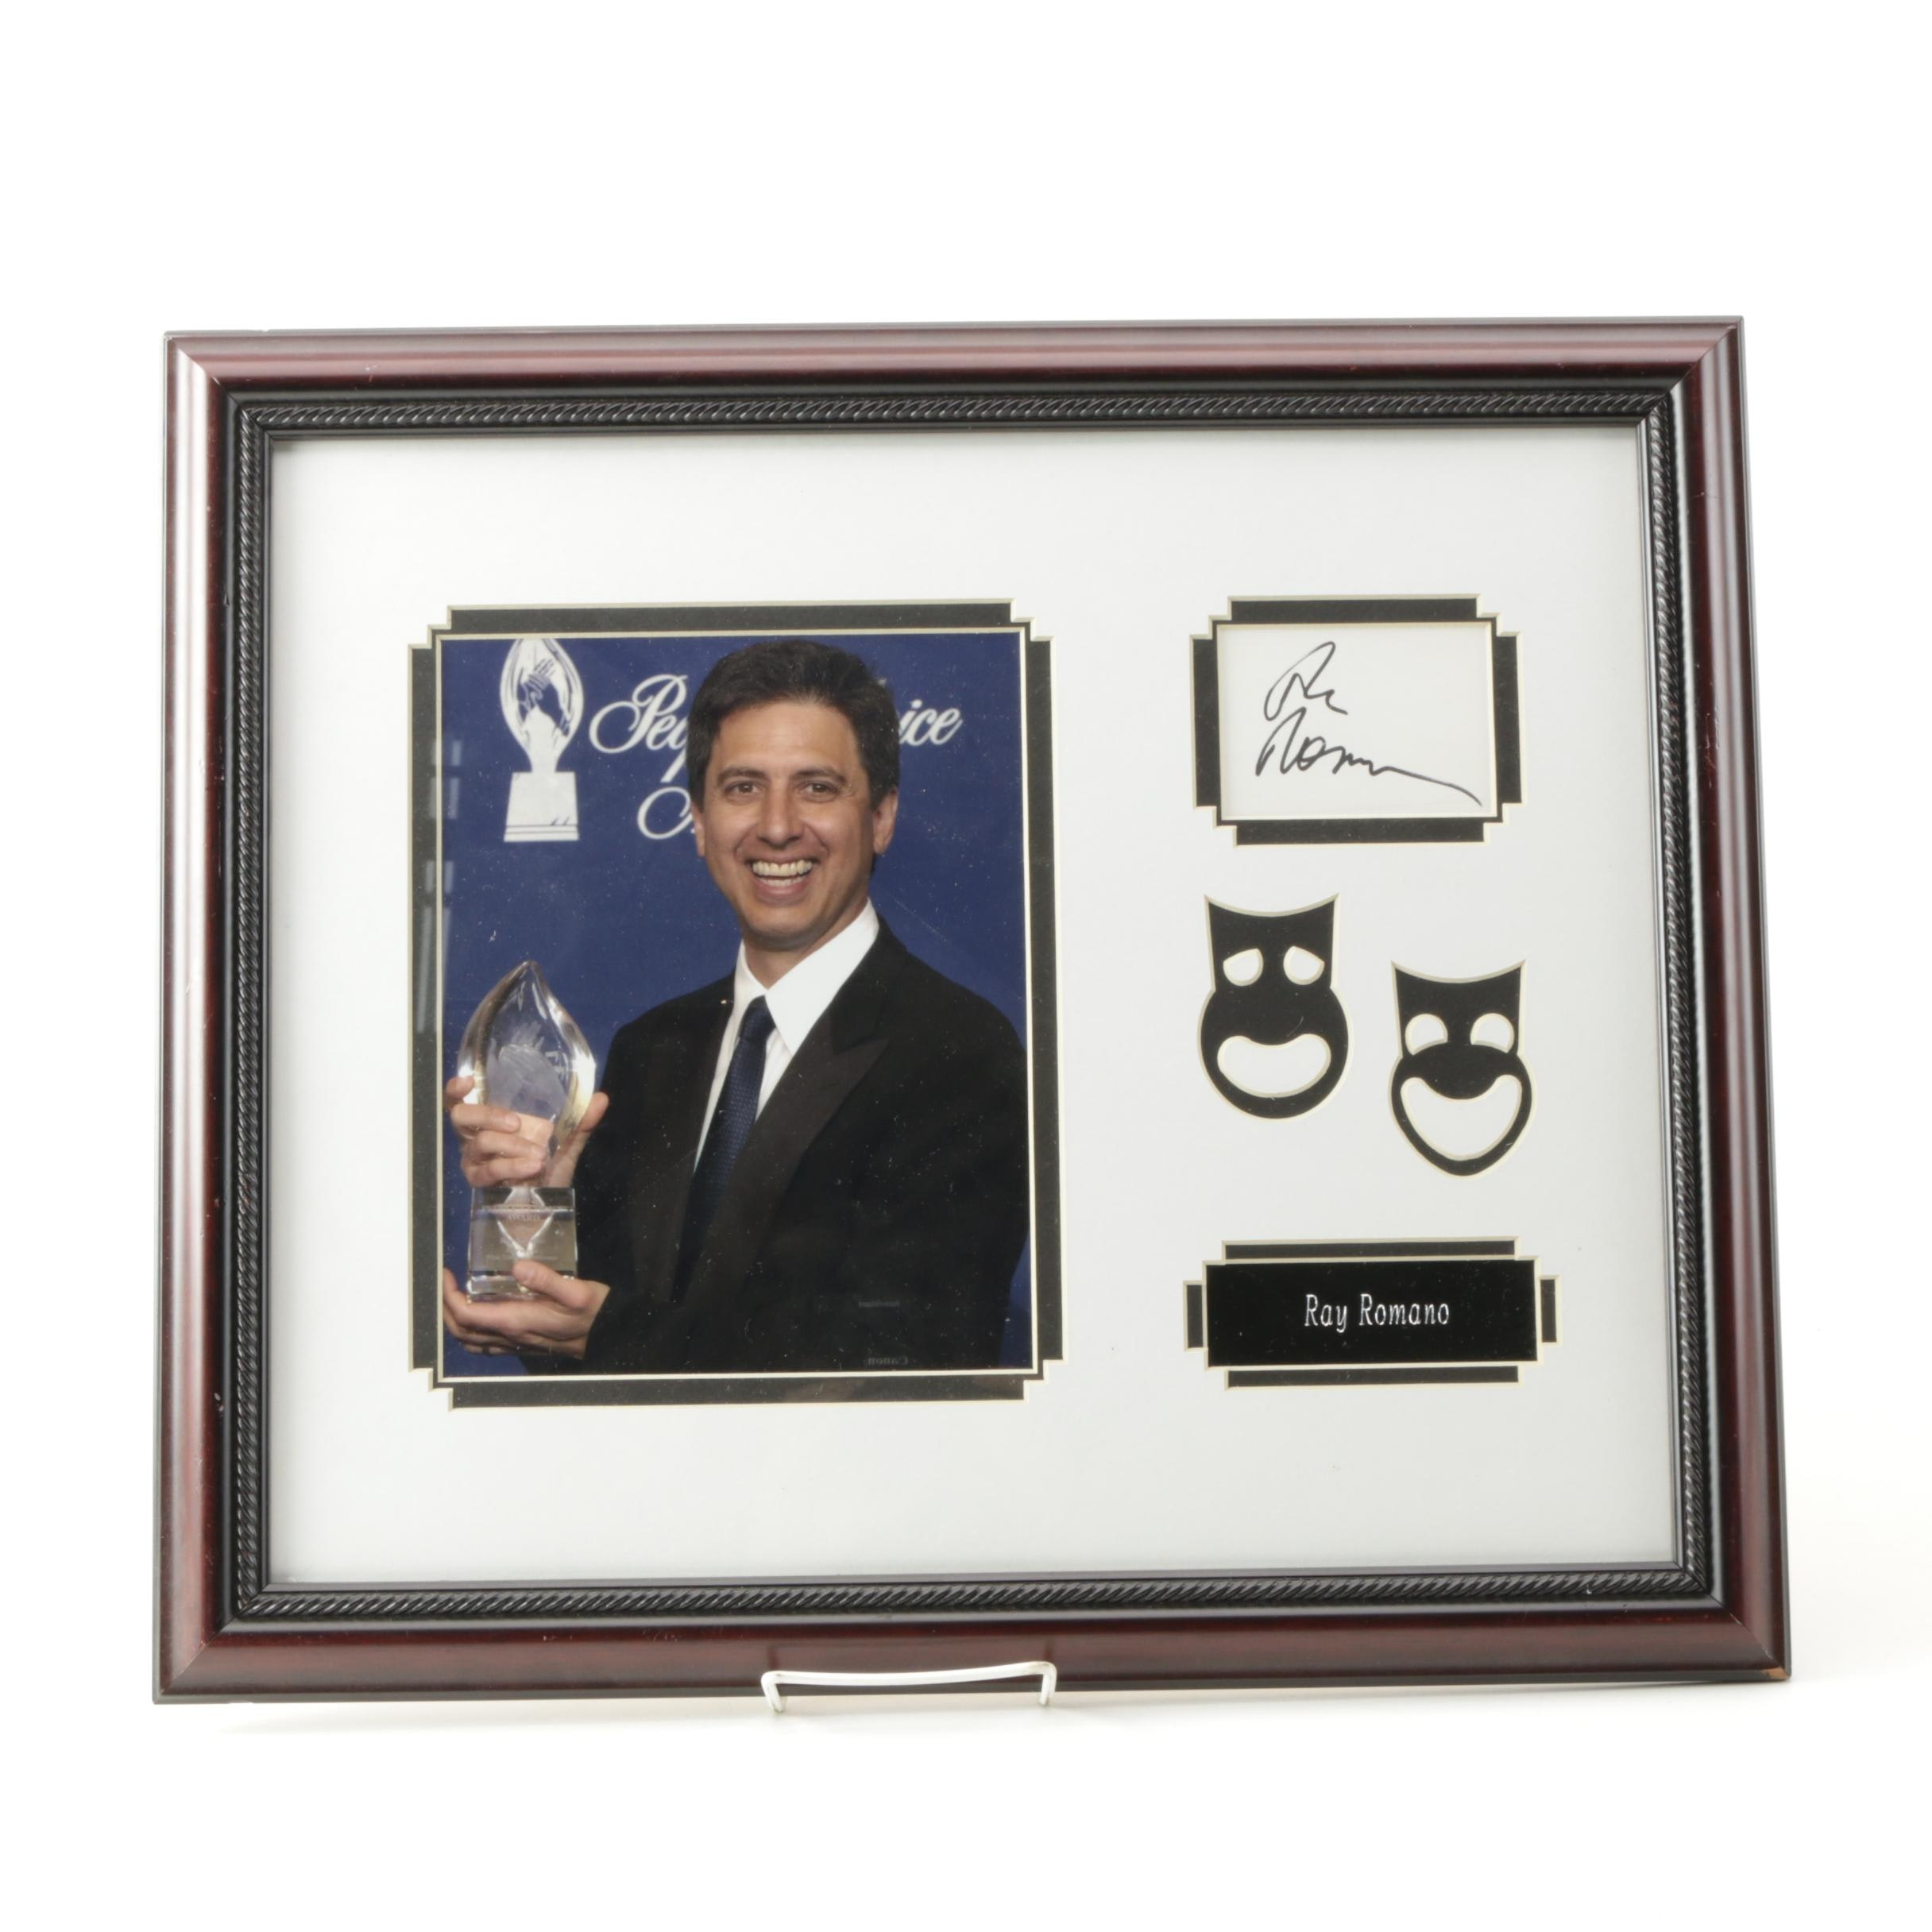 Ray Romano Framed Autograph and Photograph